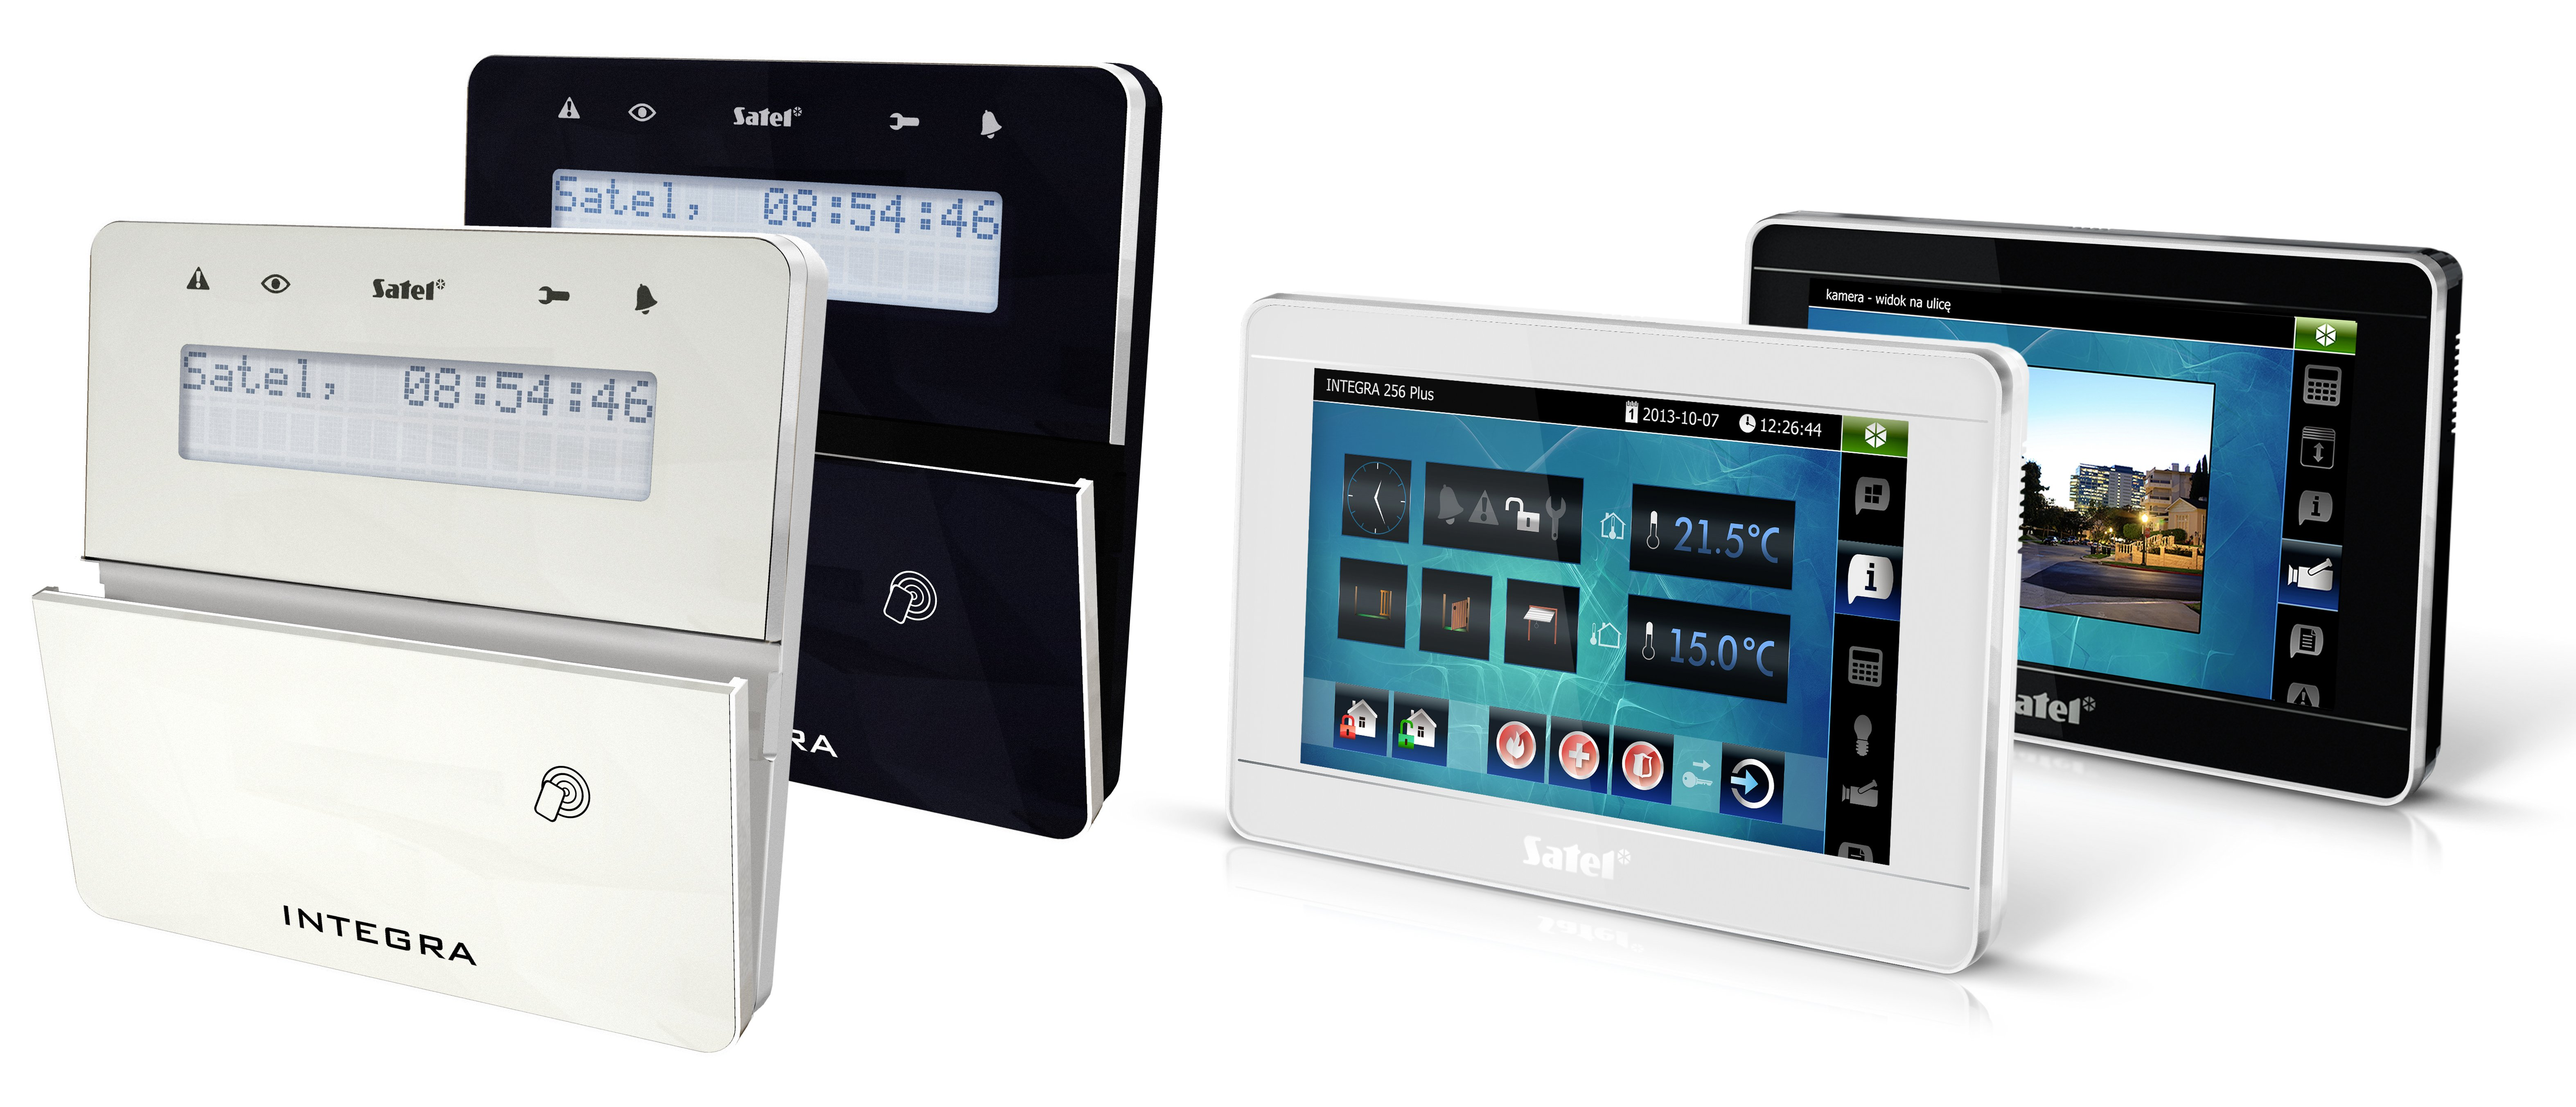 Alarmsystem SATEL integra Bedienteil mit Touch-Screen und iP-Videointegration